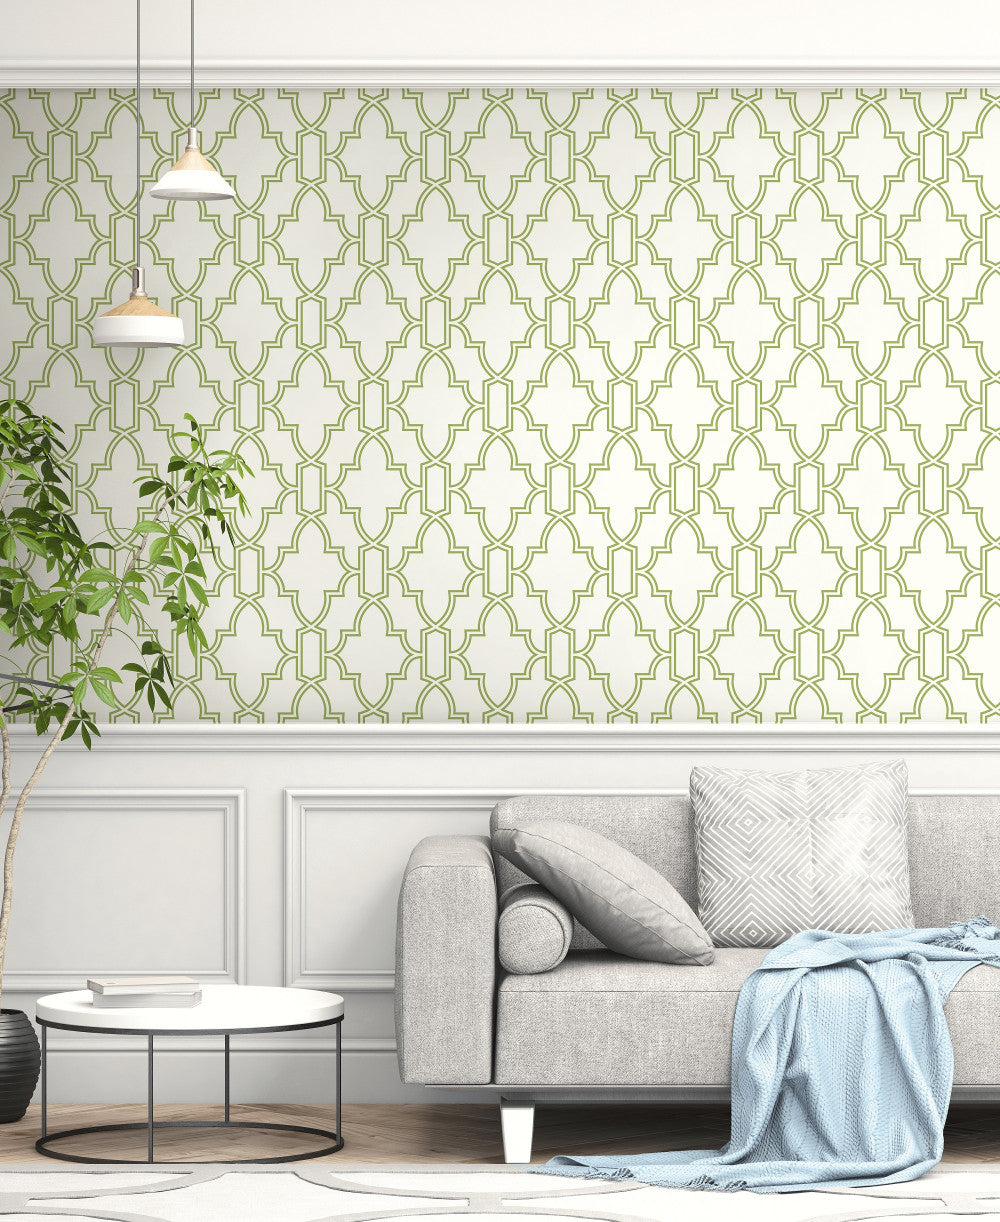 Tile Trellis Peel And Stick Wallpaper In Green And White